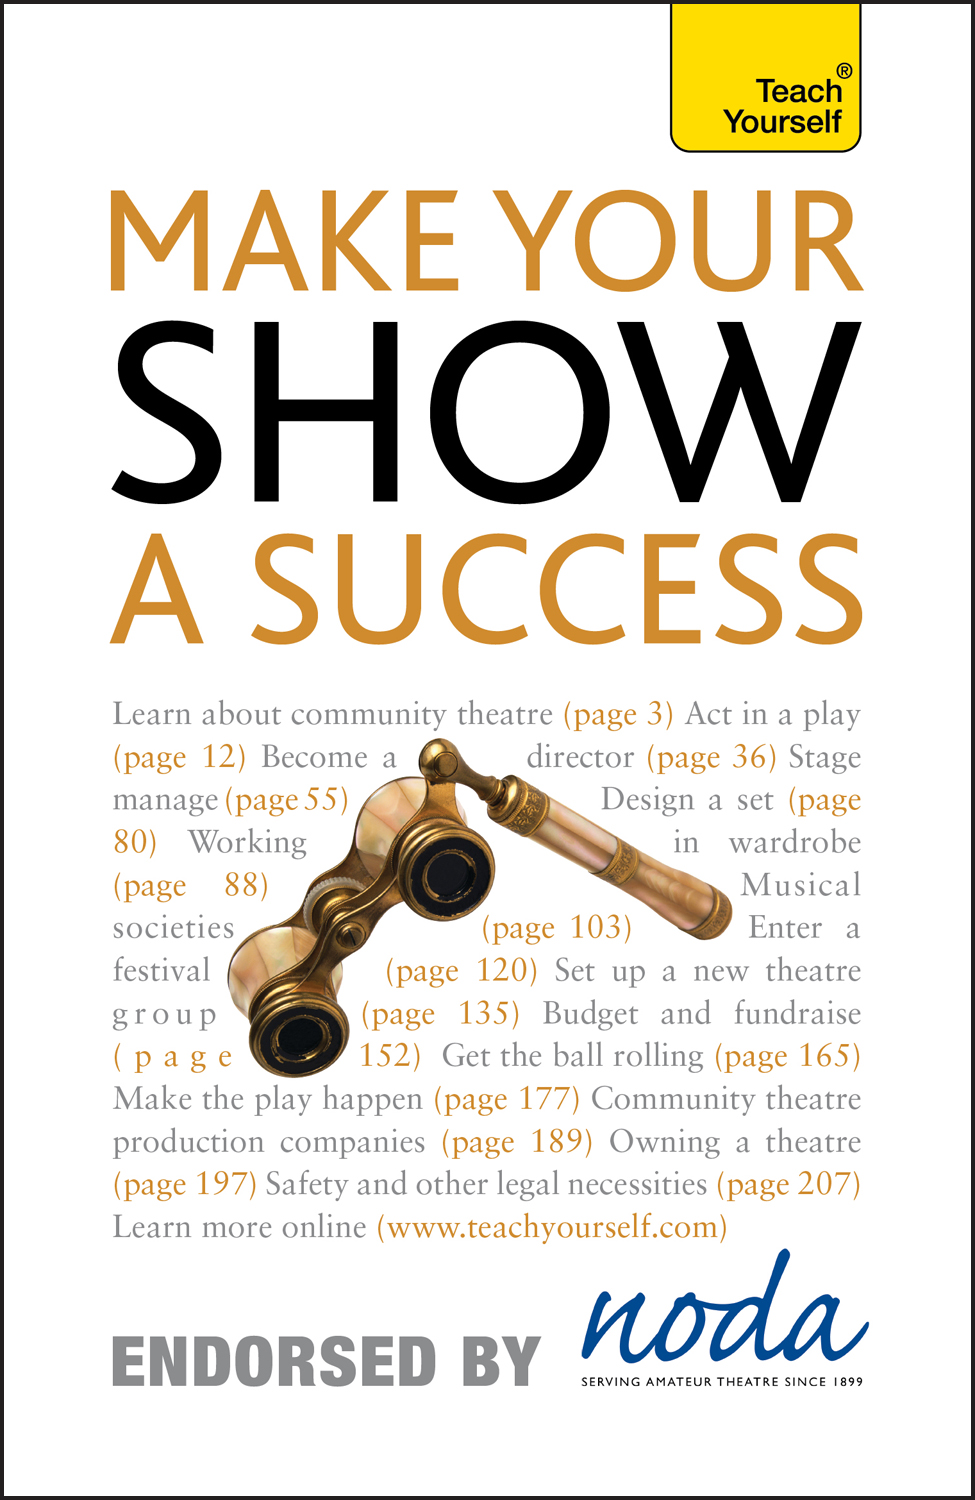 Make Your Show A Success